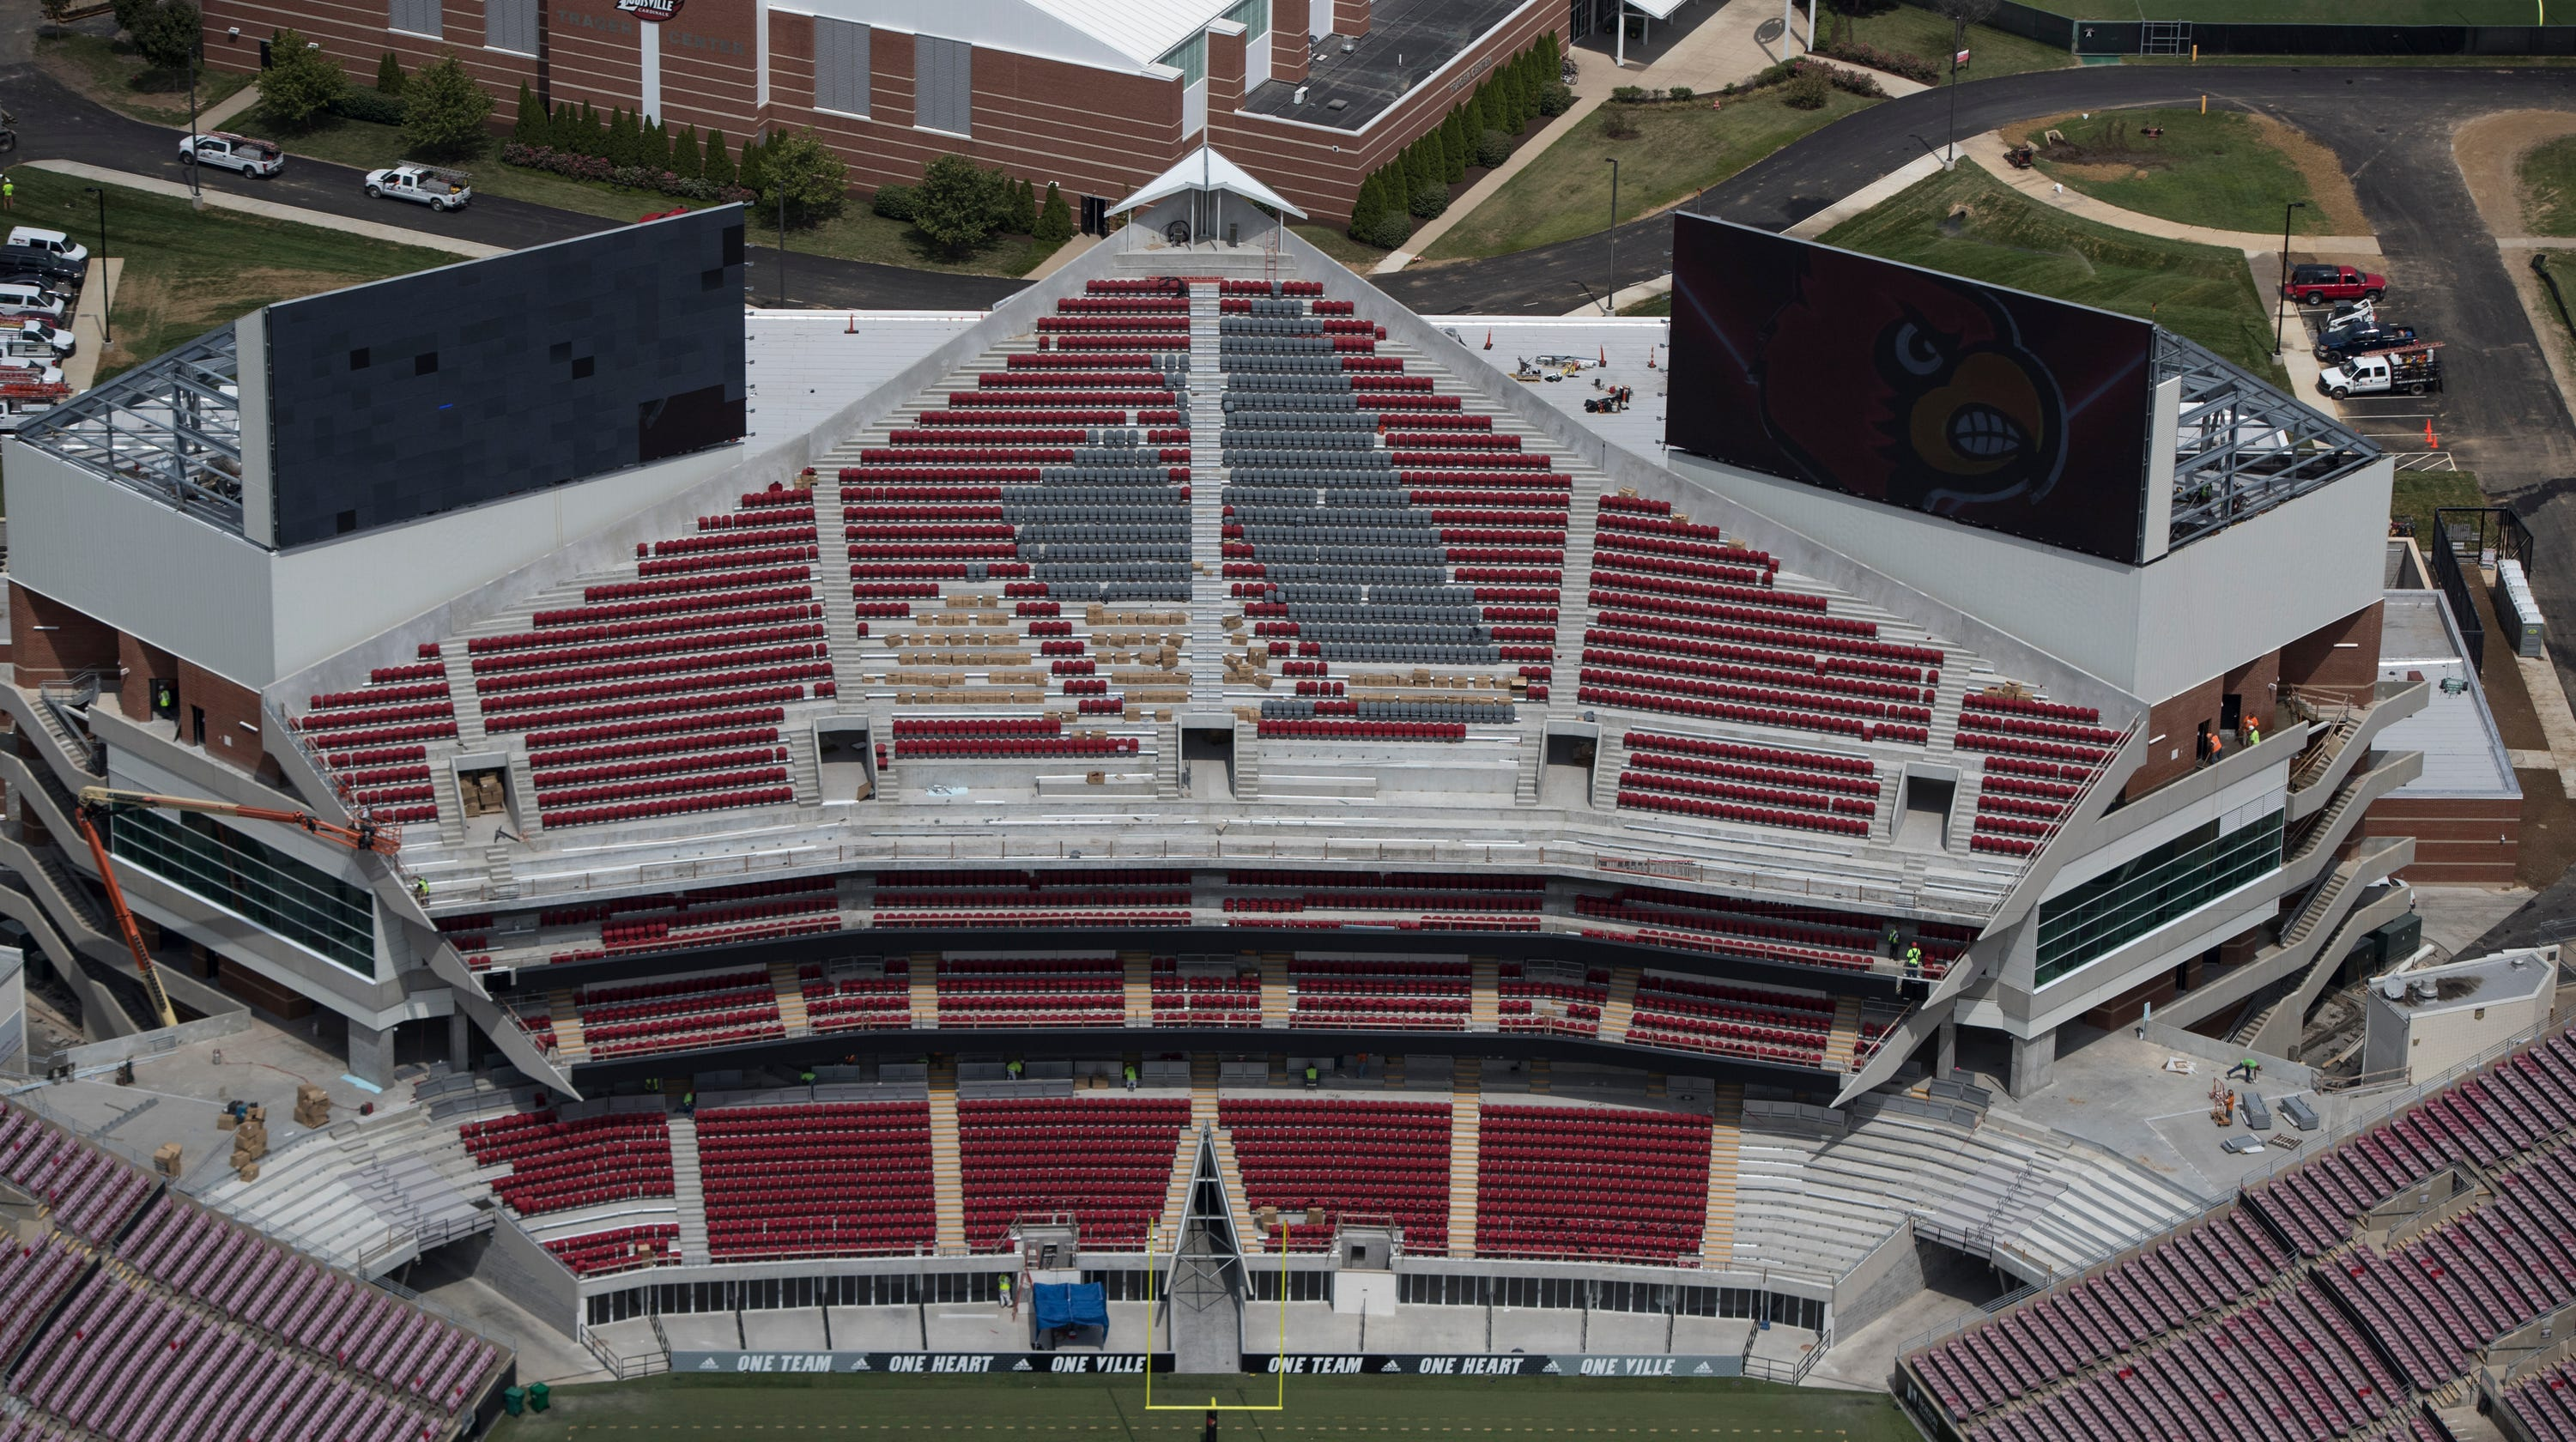 Louisville football ready for Saturday at renovated stadium